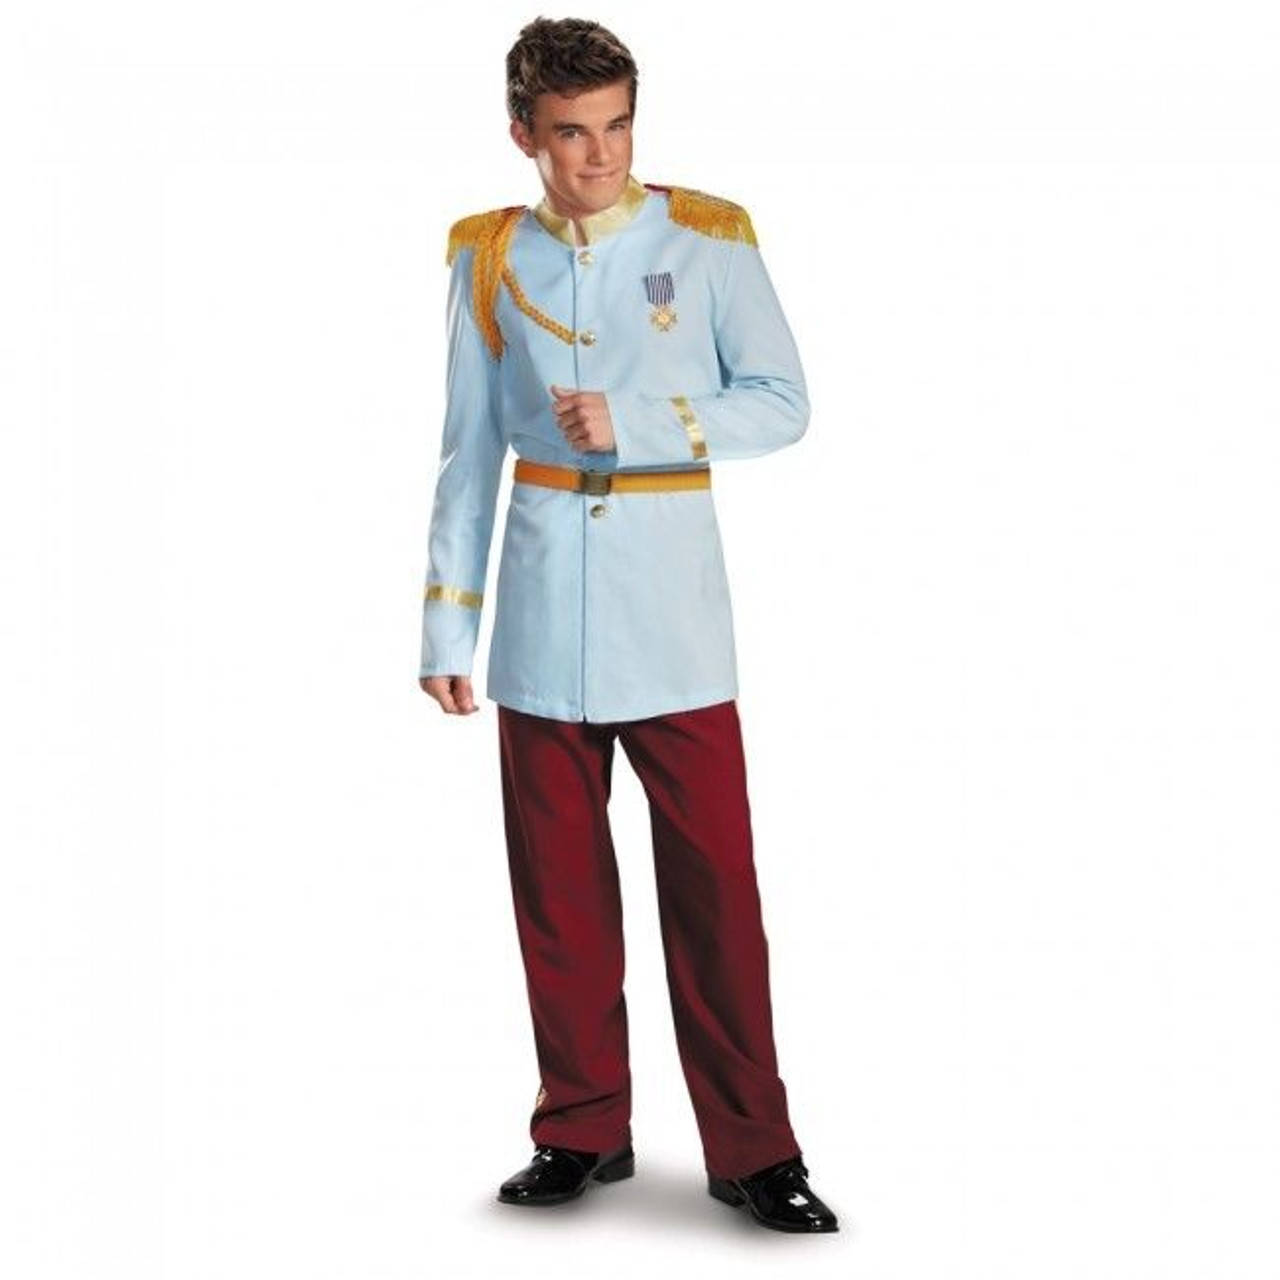 Halloween Costume 370.Disguise Disney Prince Charming Prestige Adult Mens Halloween Costume 5969